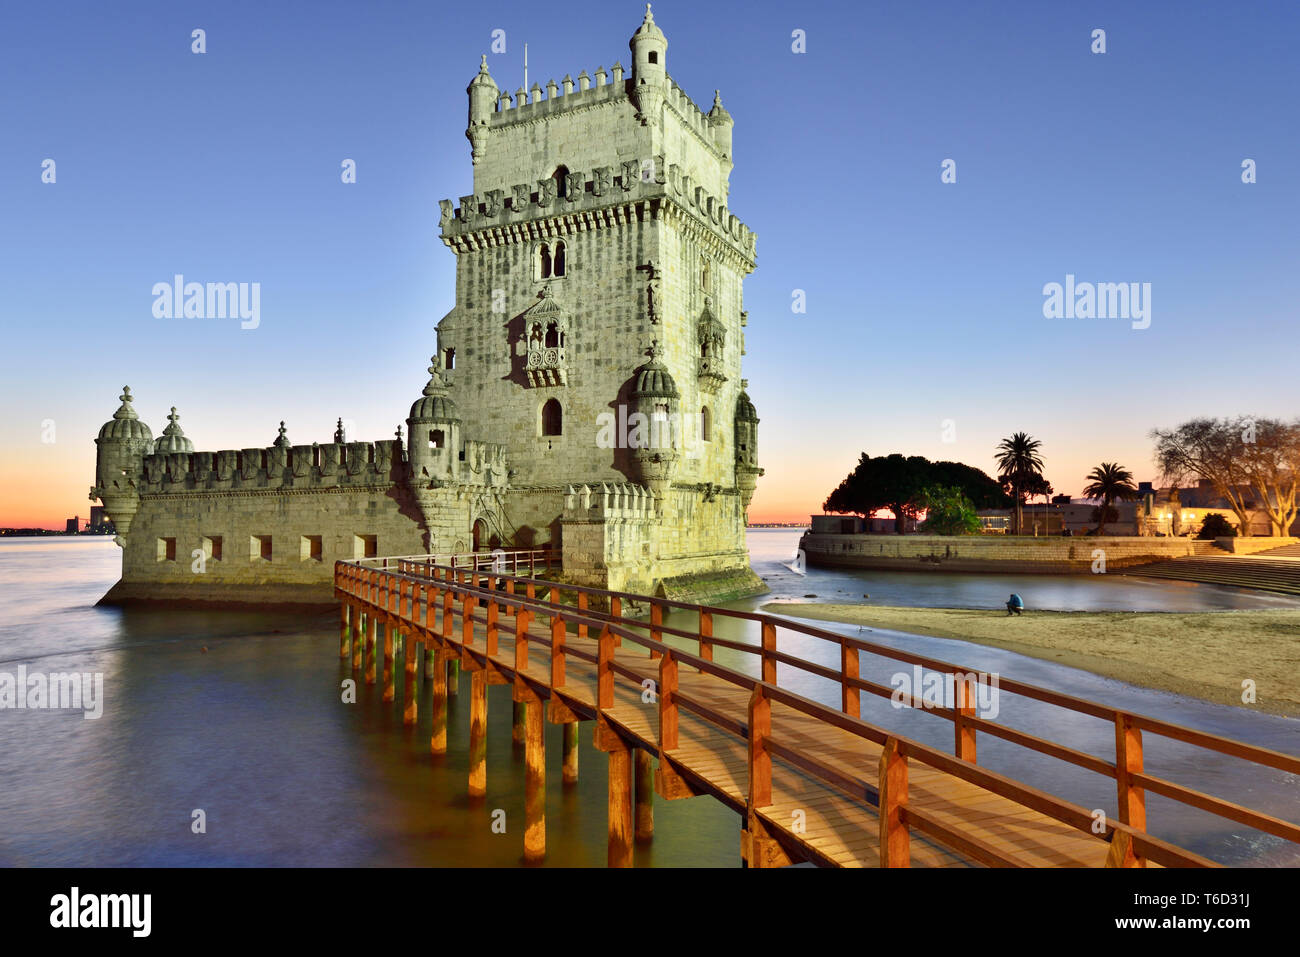 Torre de Belem (Belem Tower), in the Tagus river, a UNESCO World Heritage Site built in the 16th century in Portuguese Manueline Style at twilight. - Stock Image